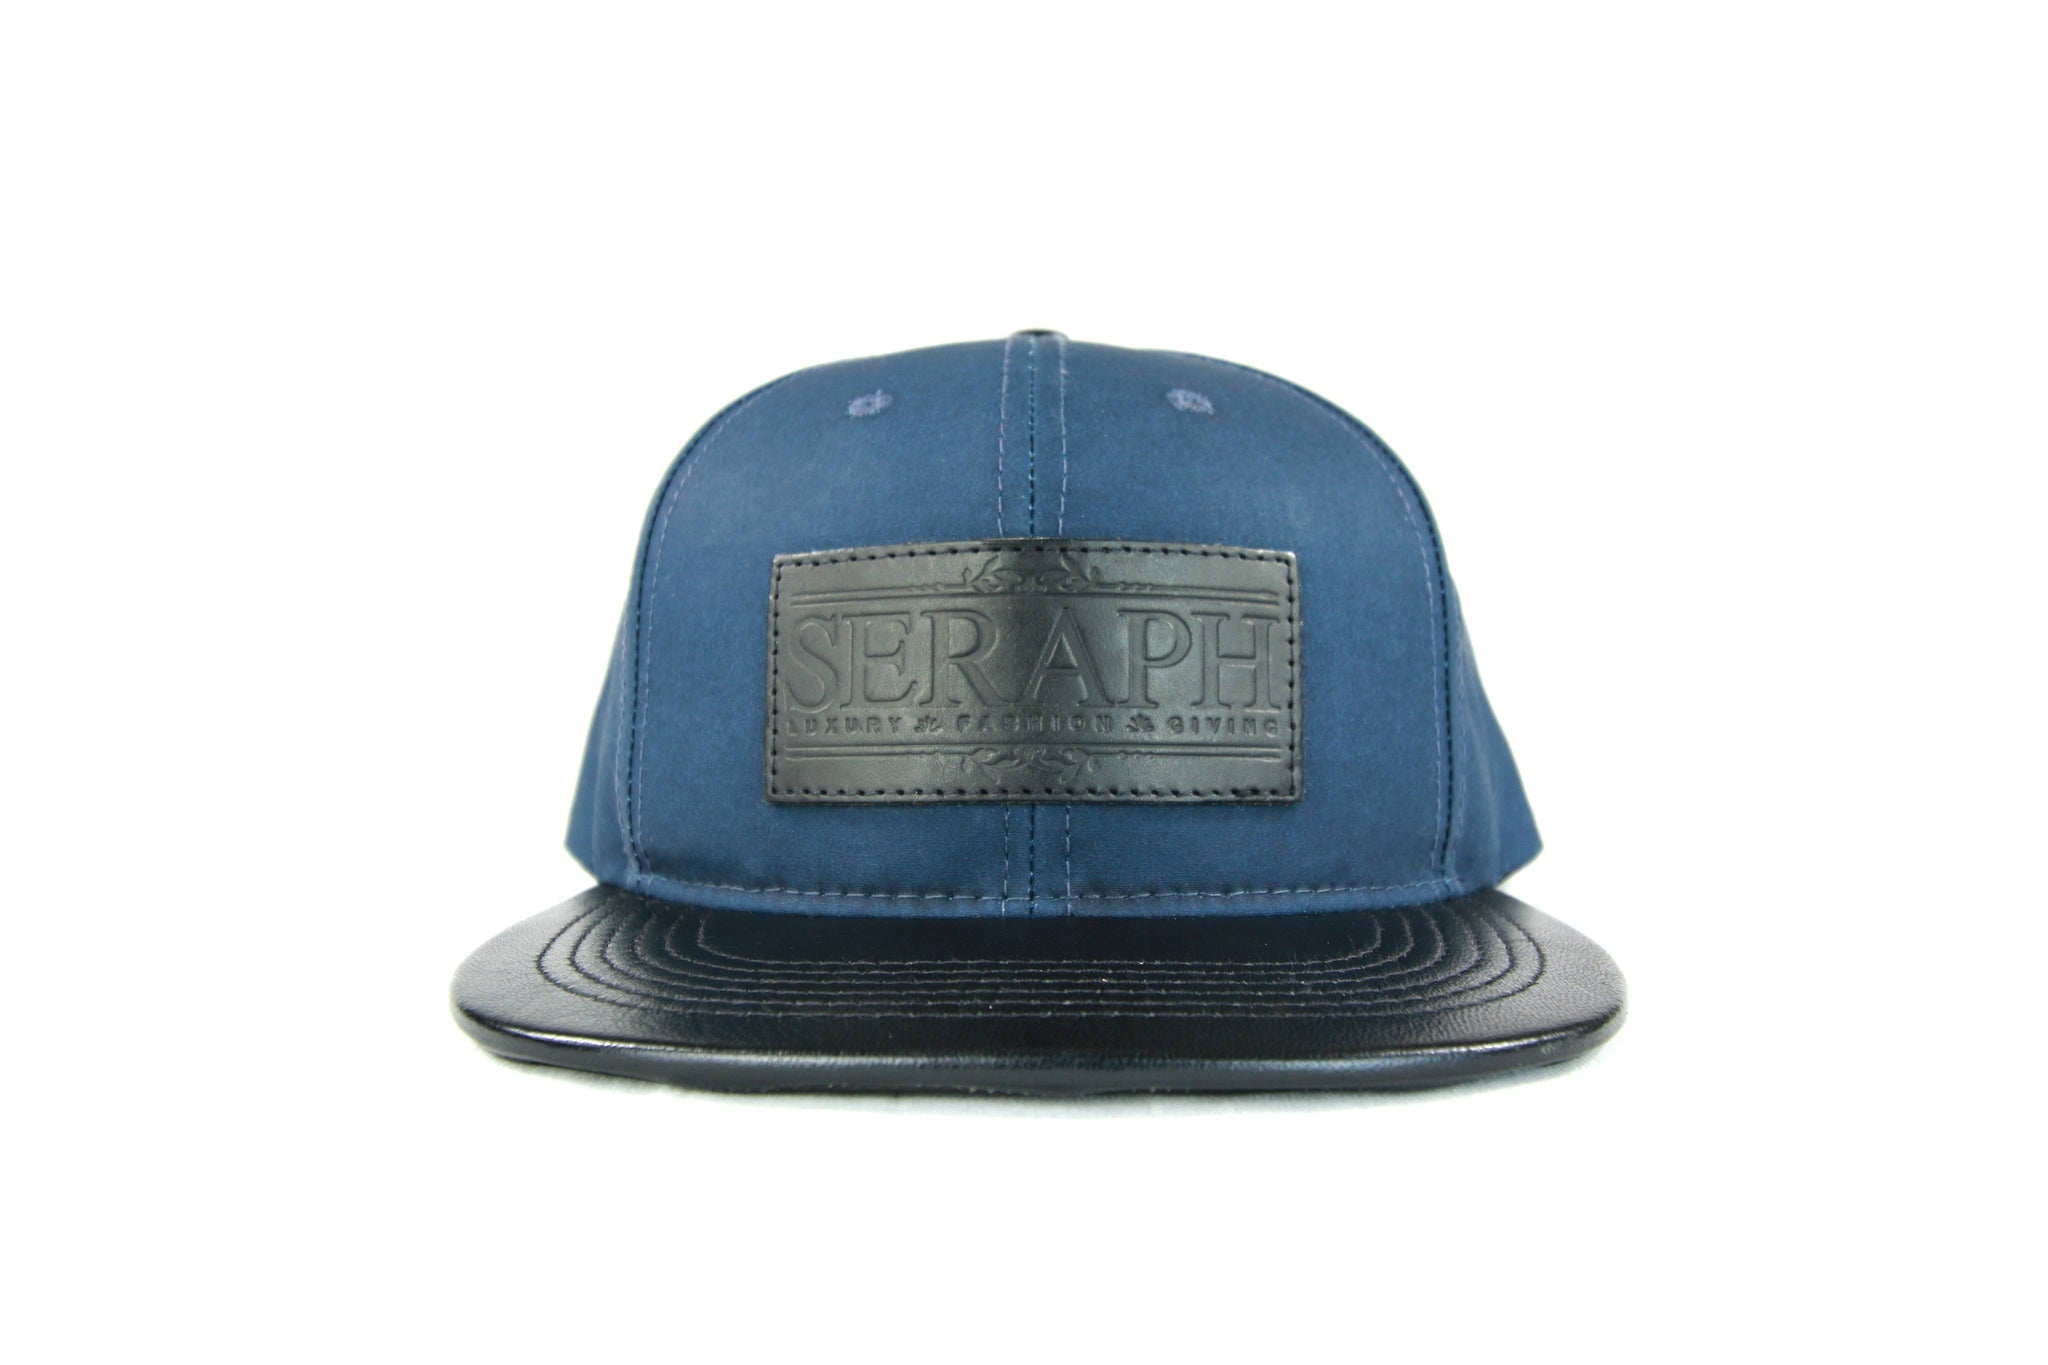 Black Label Hat, Water Resistant Navy Blue